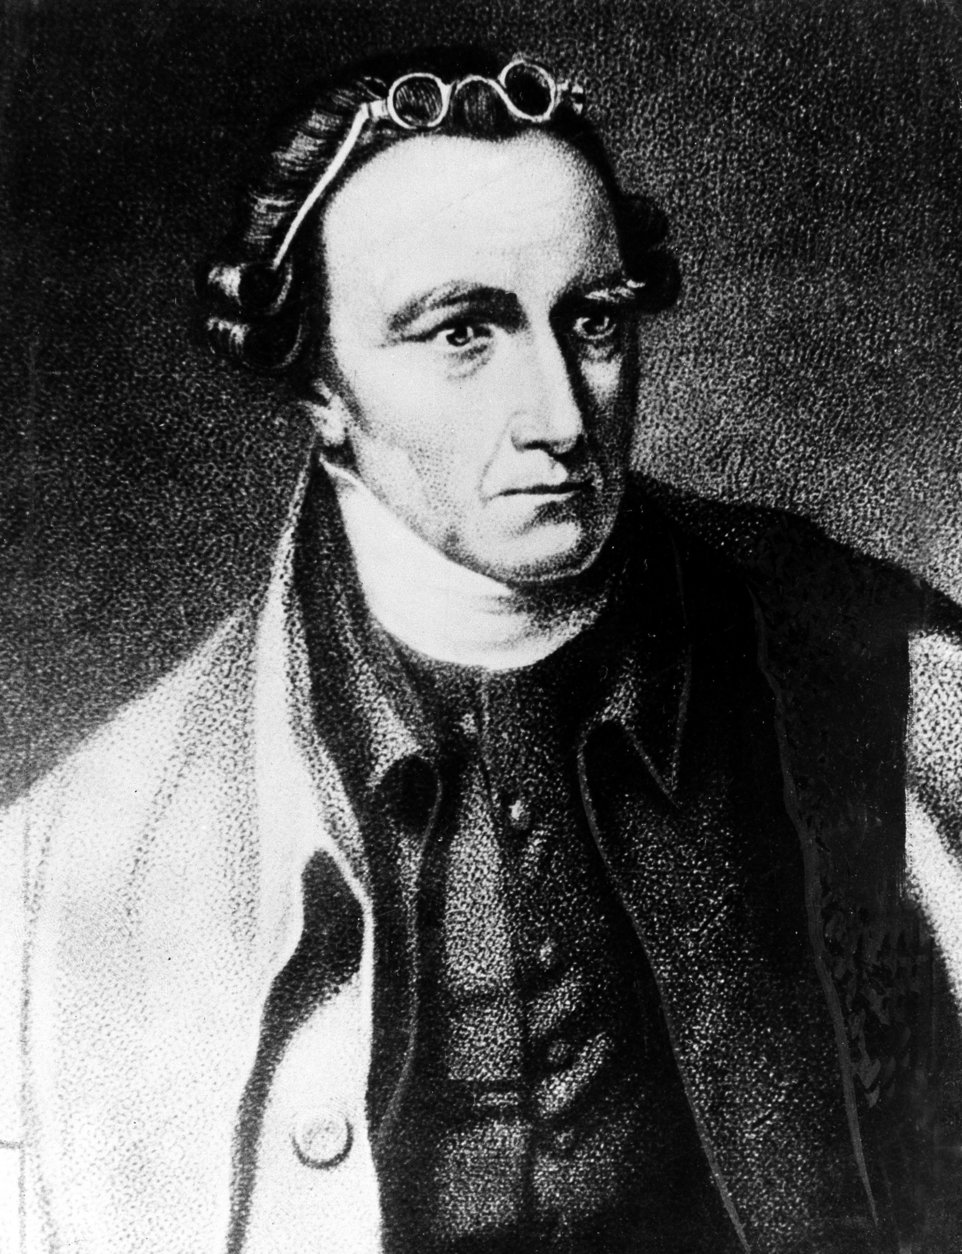 This is an undated portrait of American patriot Patrick Henry.  Henry was born in 1737 in Virginia, where he served as governor from 1776 to 1779 and 1784 to 1786.  He contributed to the adoption of the Bill of Rights.  (AP Photo)